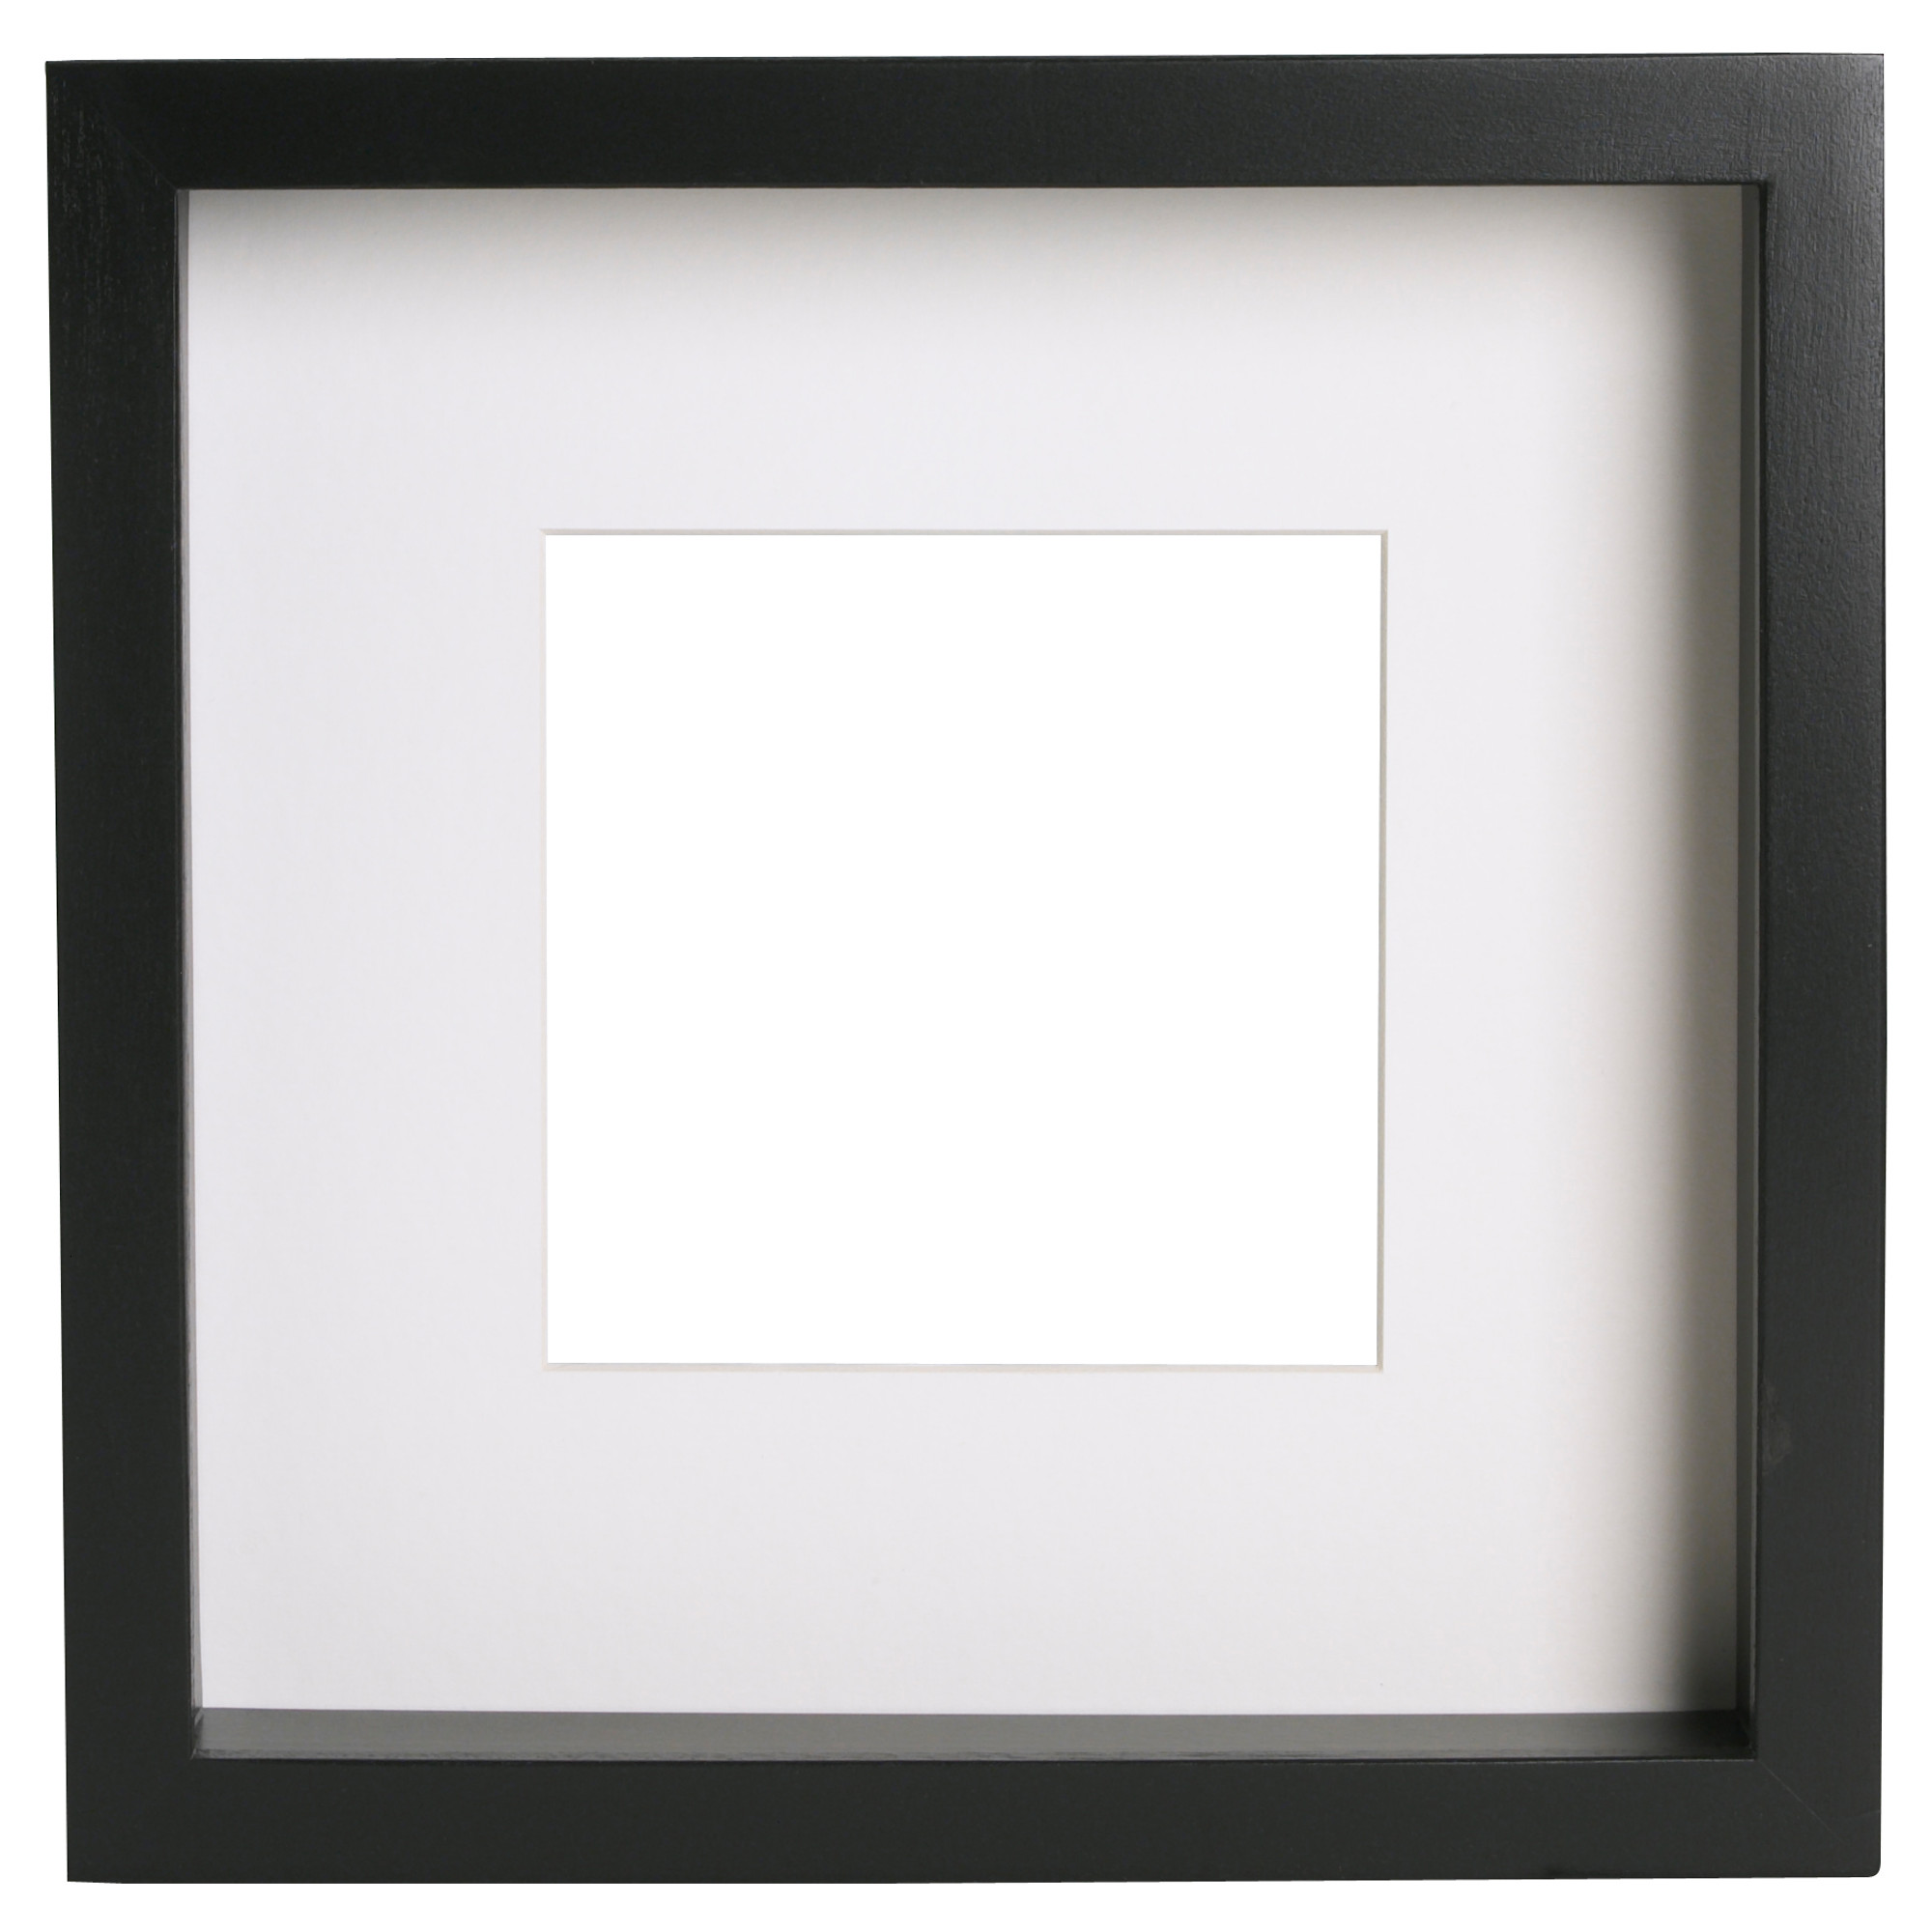 Ikea Ribba Frames that can be used as shadow boxes come in Black or White.